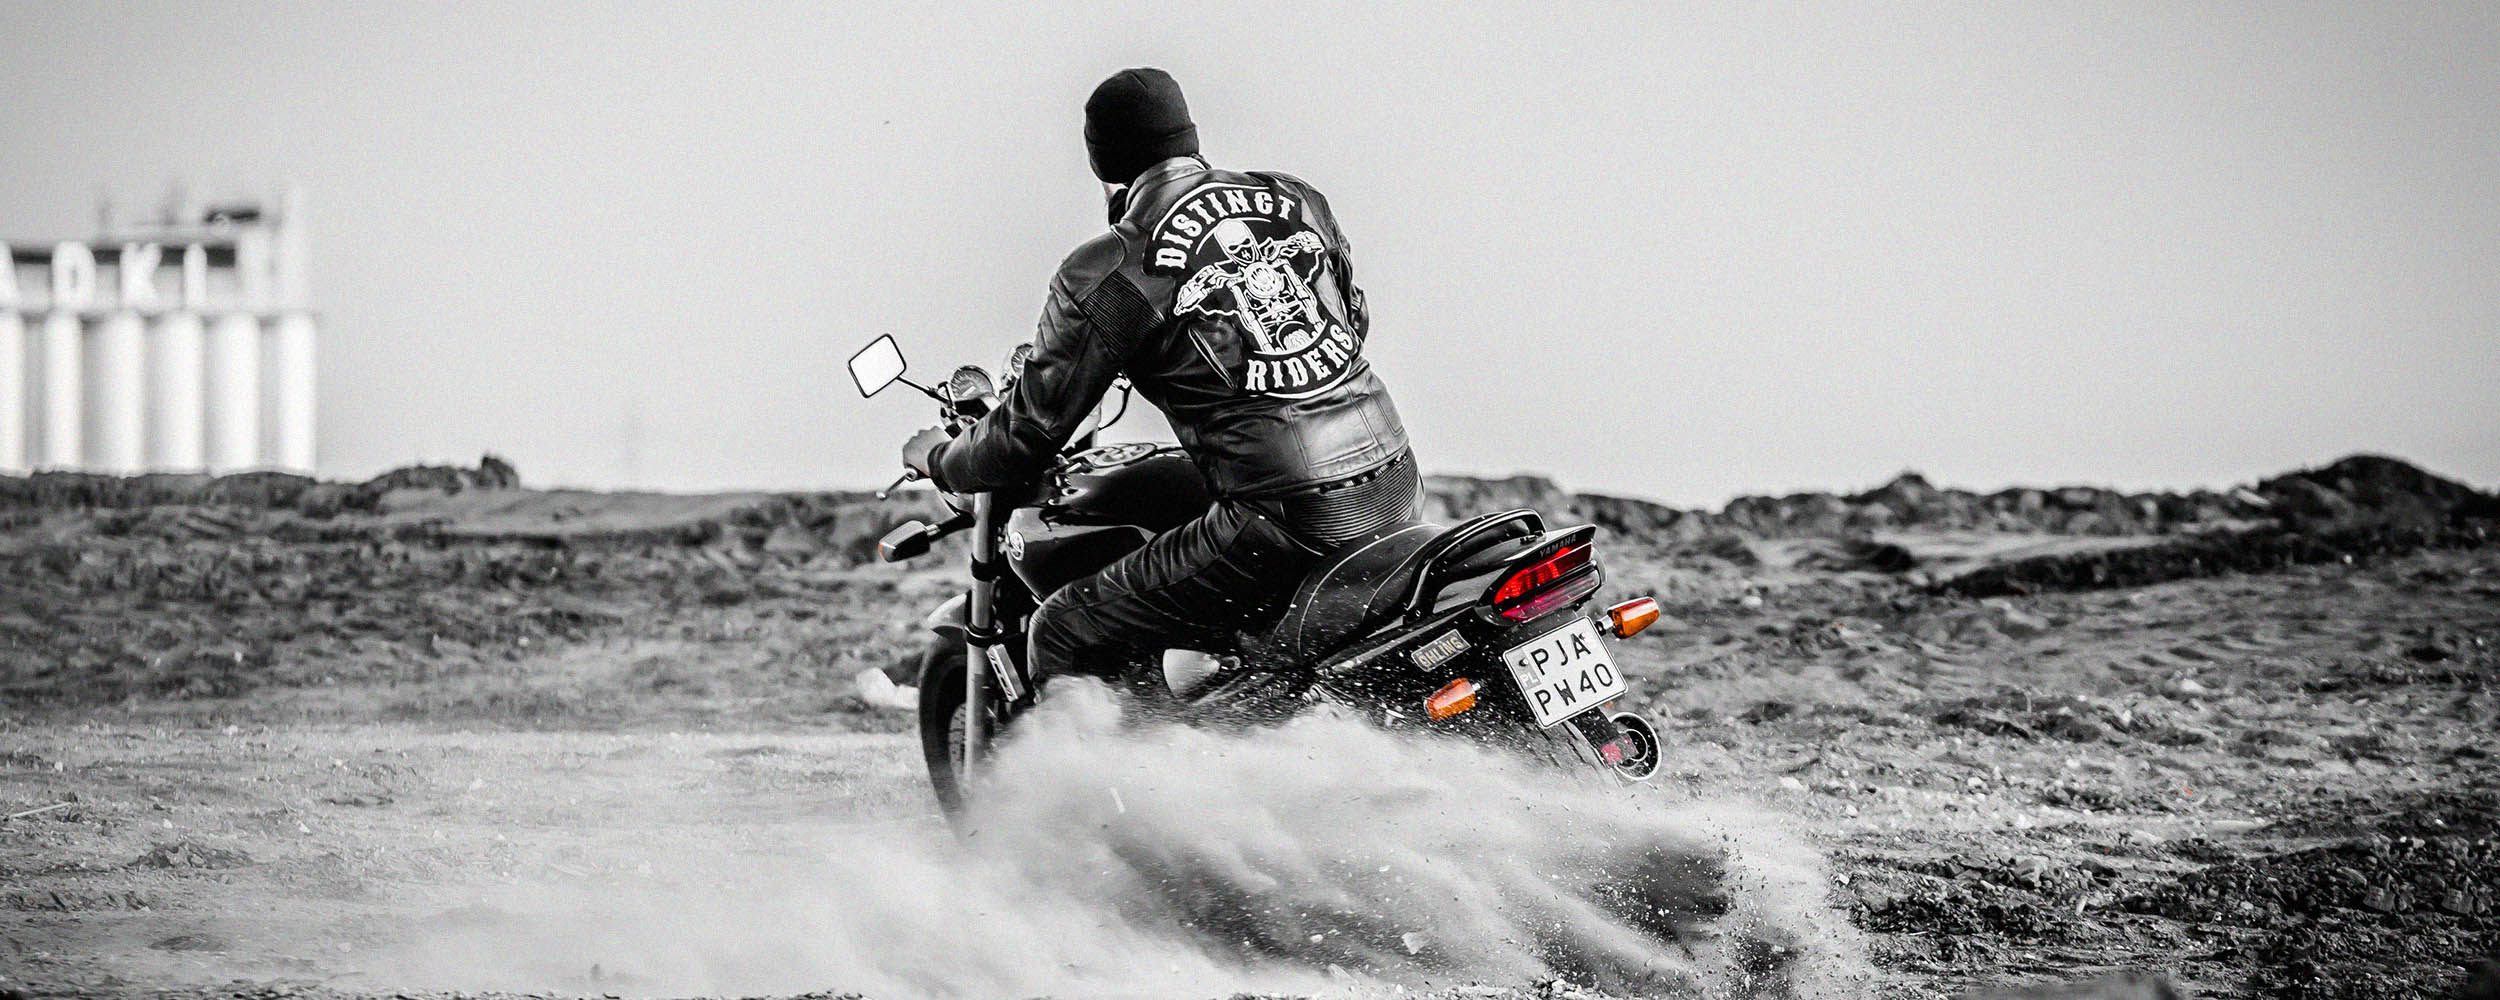 banner-distinct-riders4